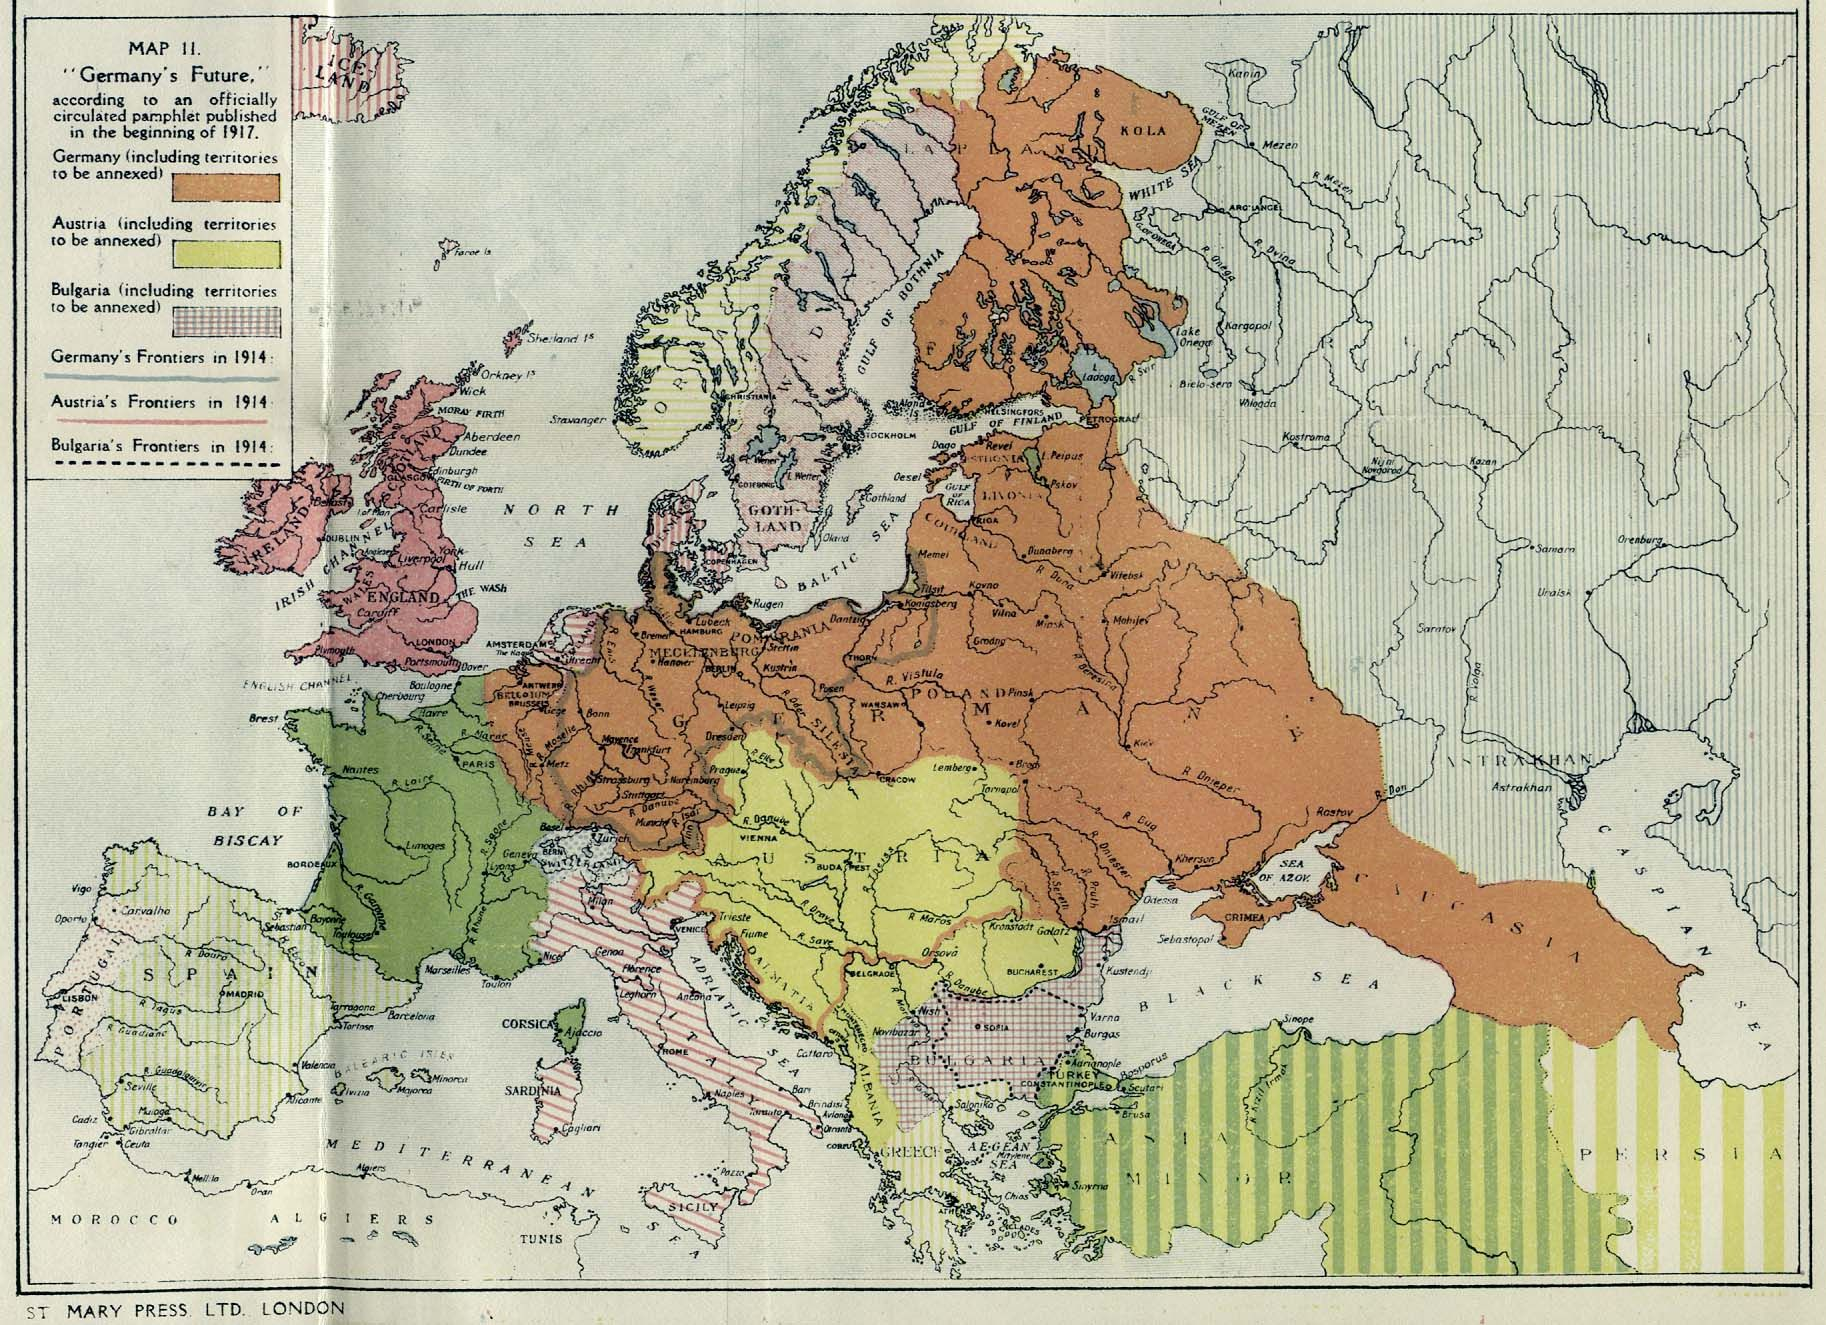 1917 British propaganda map showcasing alleged German